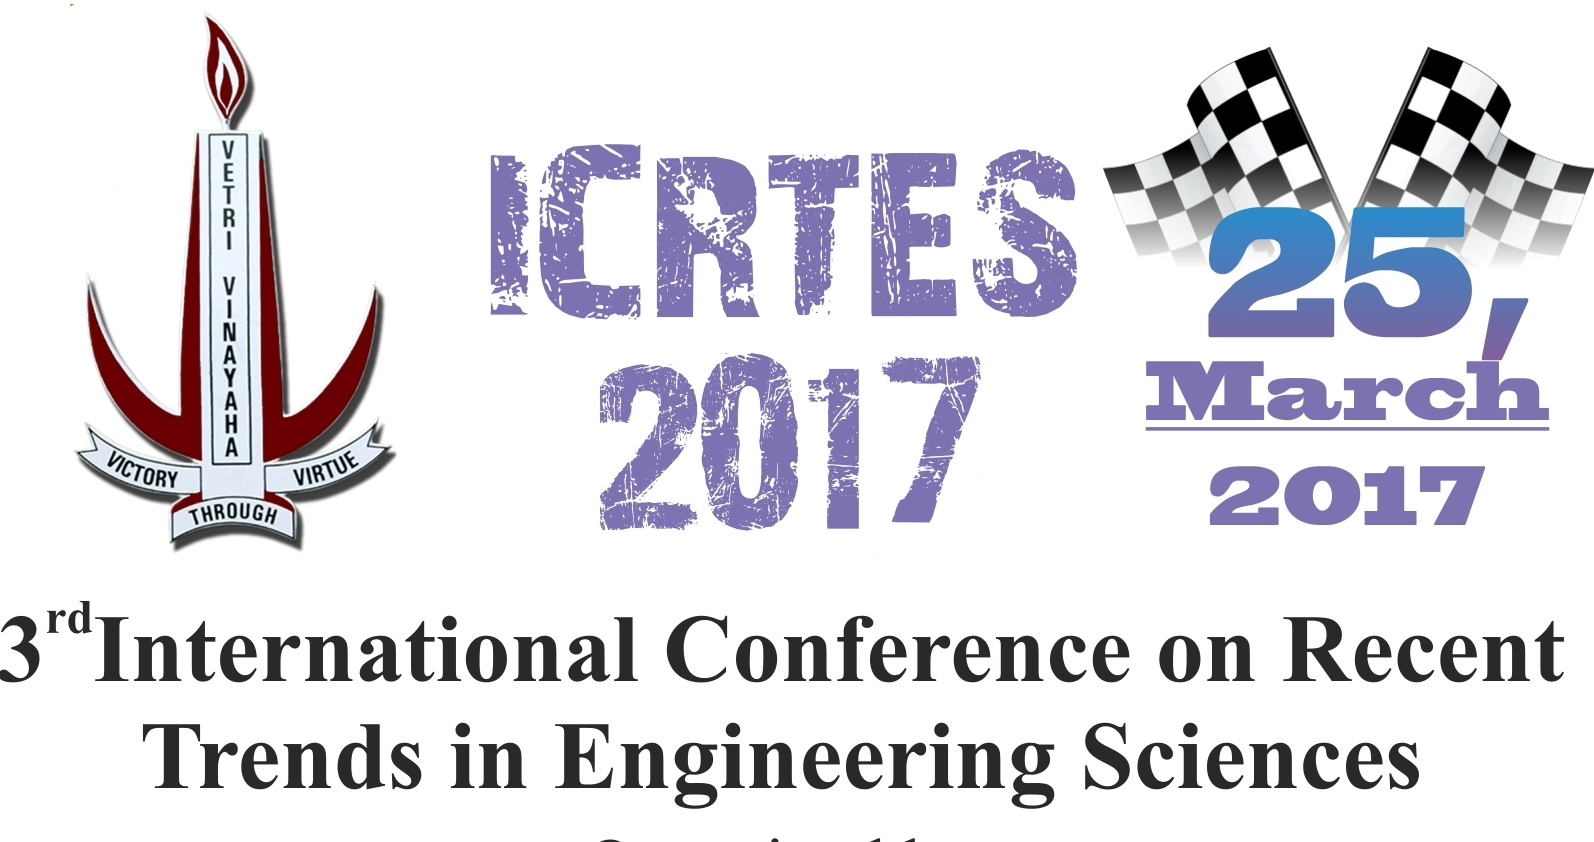 International Conference on Recent Trends in Engineering Sciences ICRTES 2017